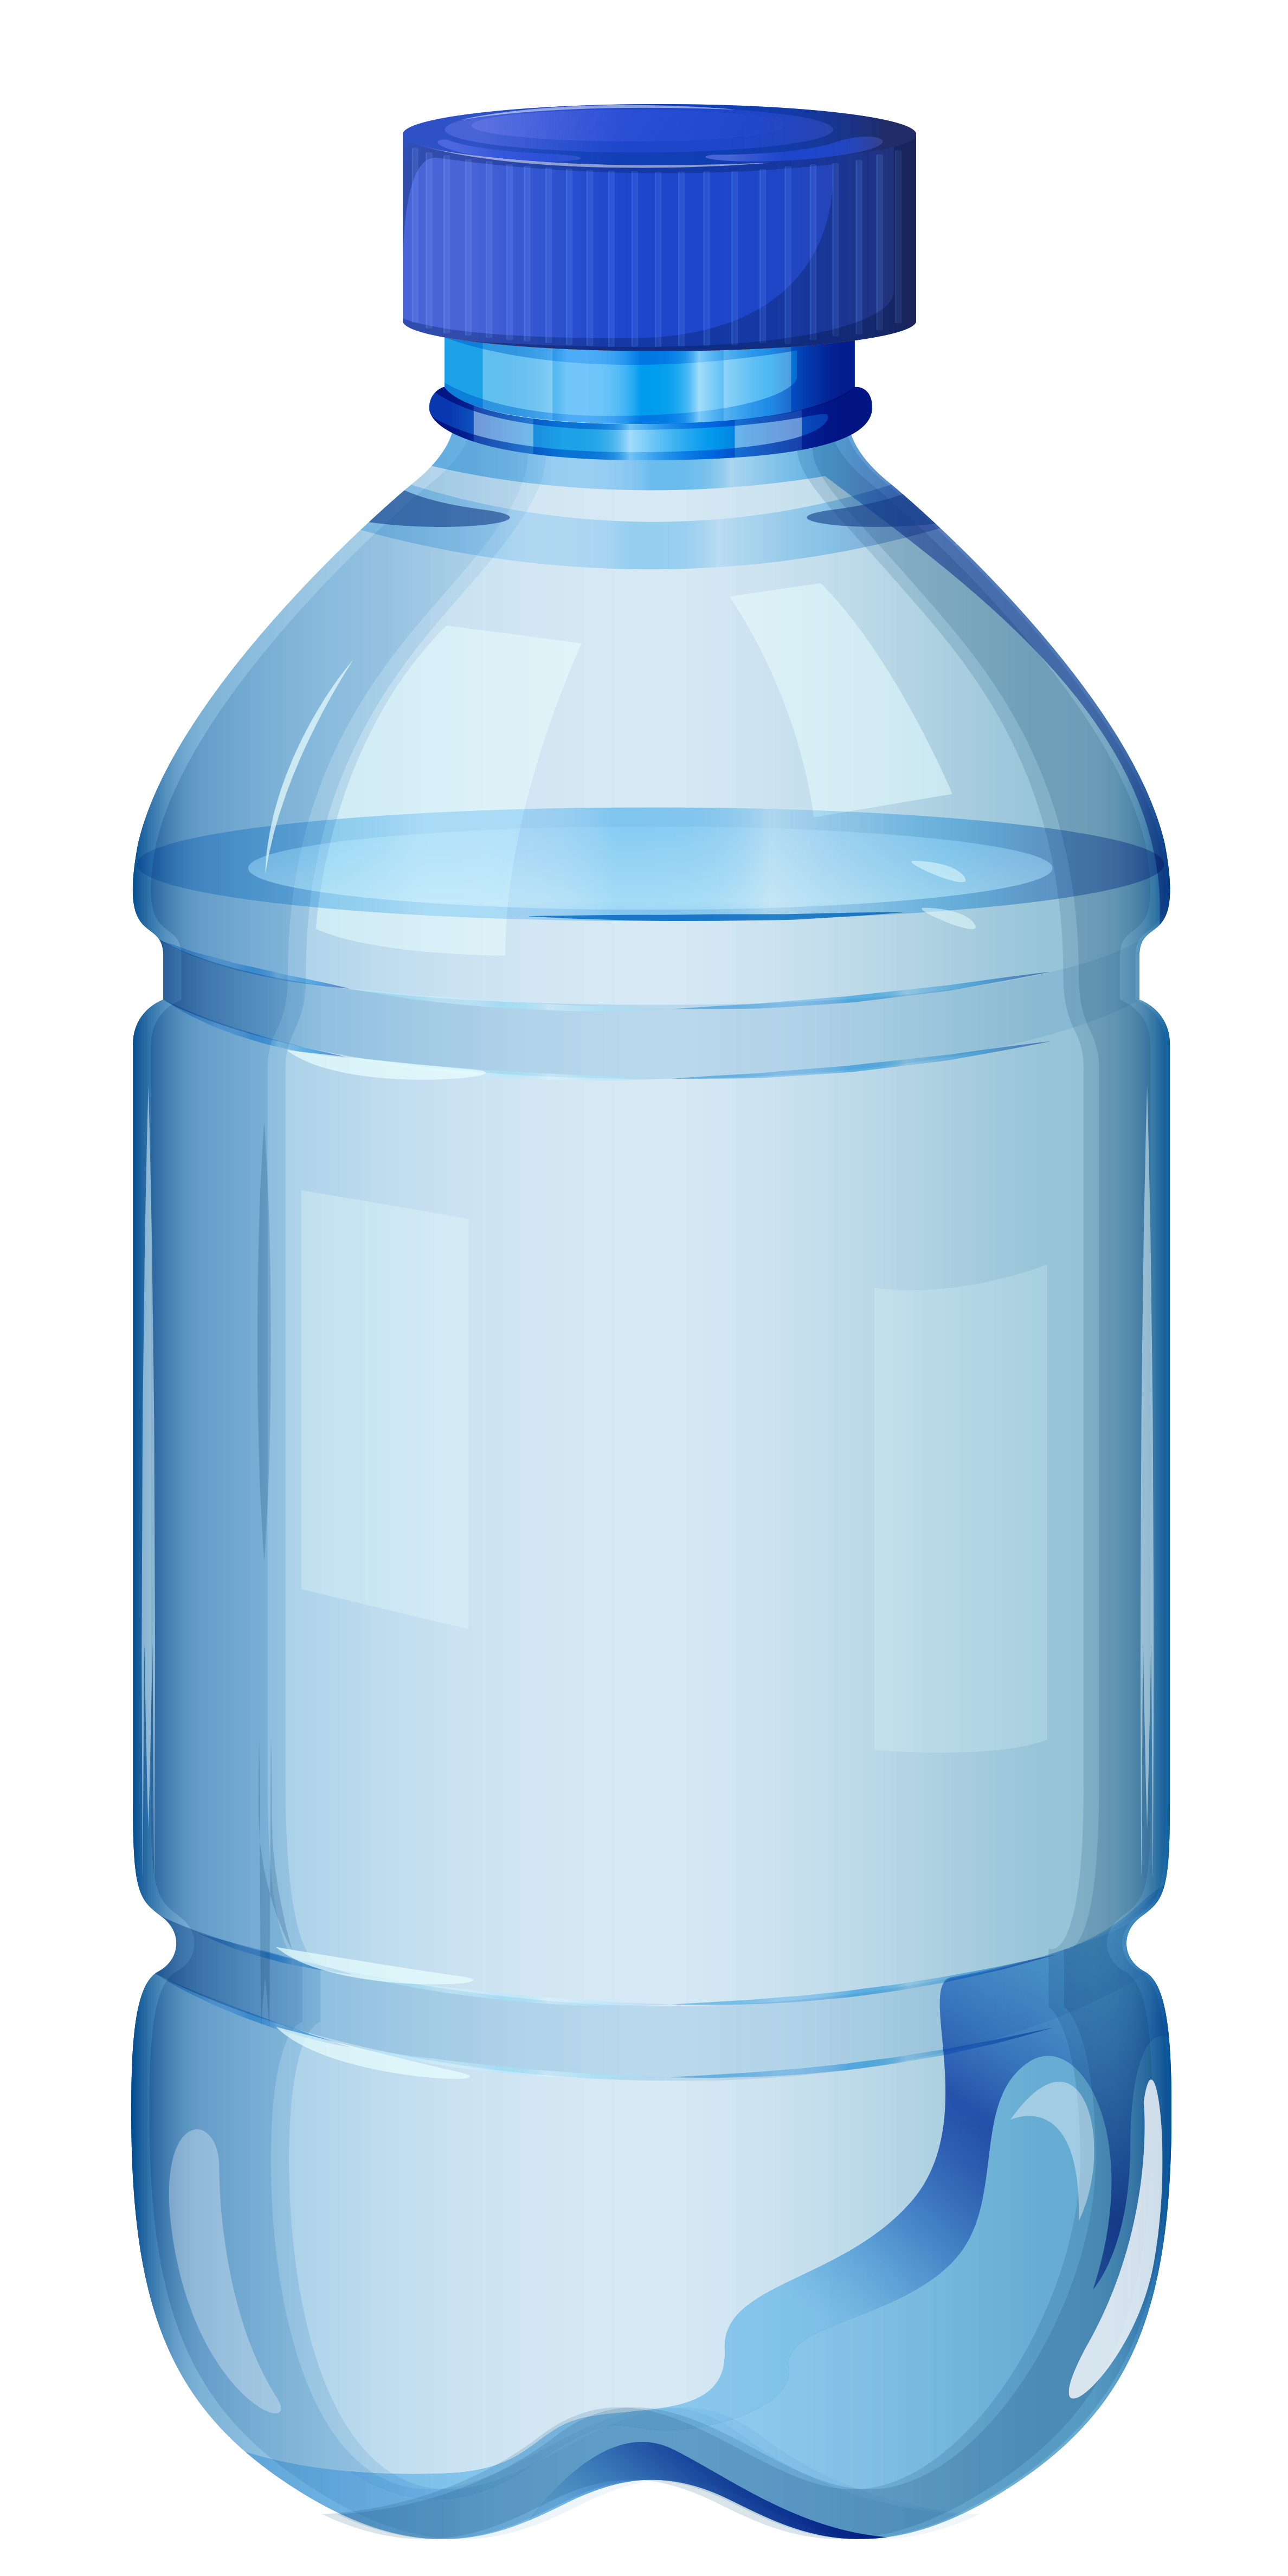 Small mineral clipart image. Bottle of water png